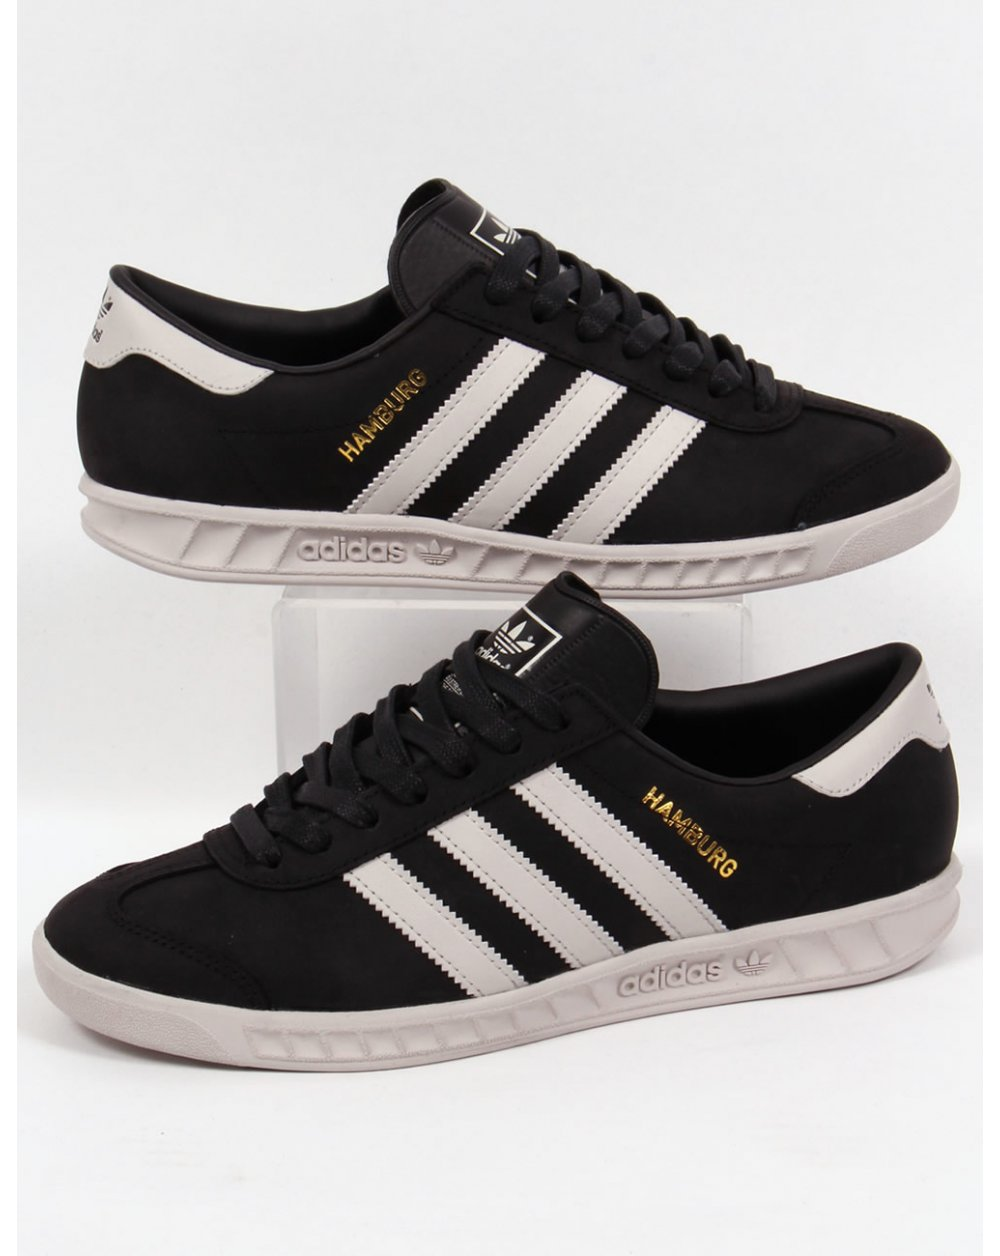 8f75309ebda37 Adidas Hamburg Trainers Black/white